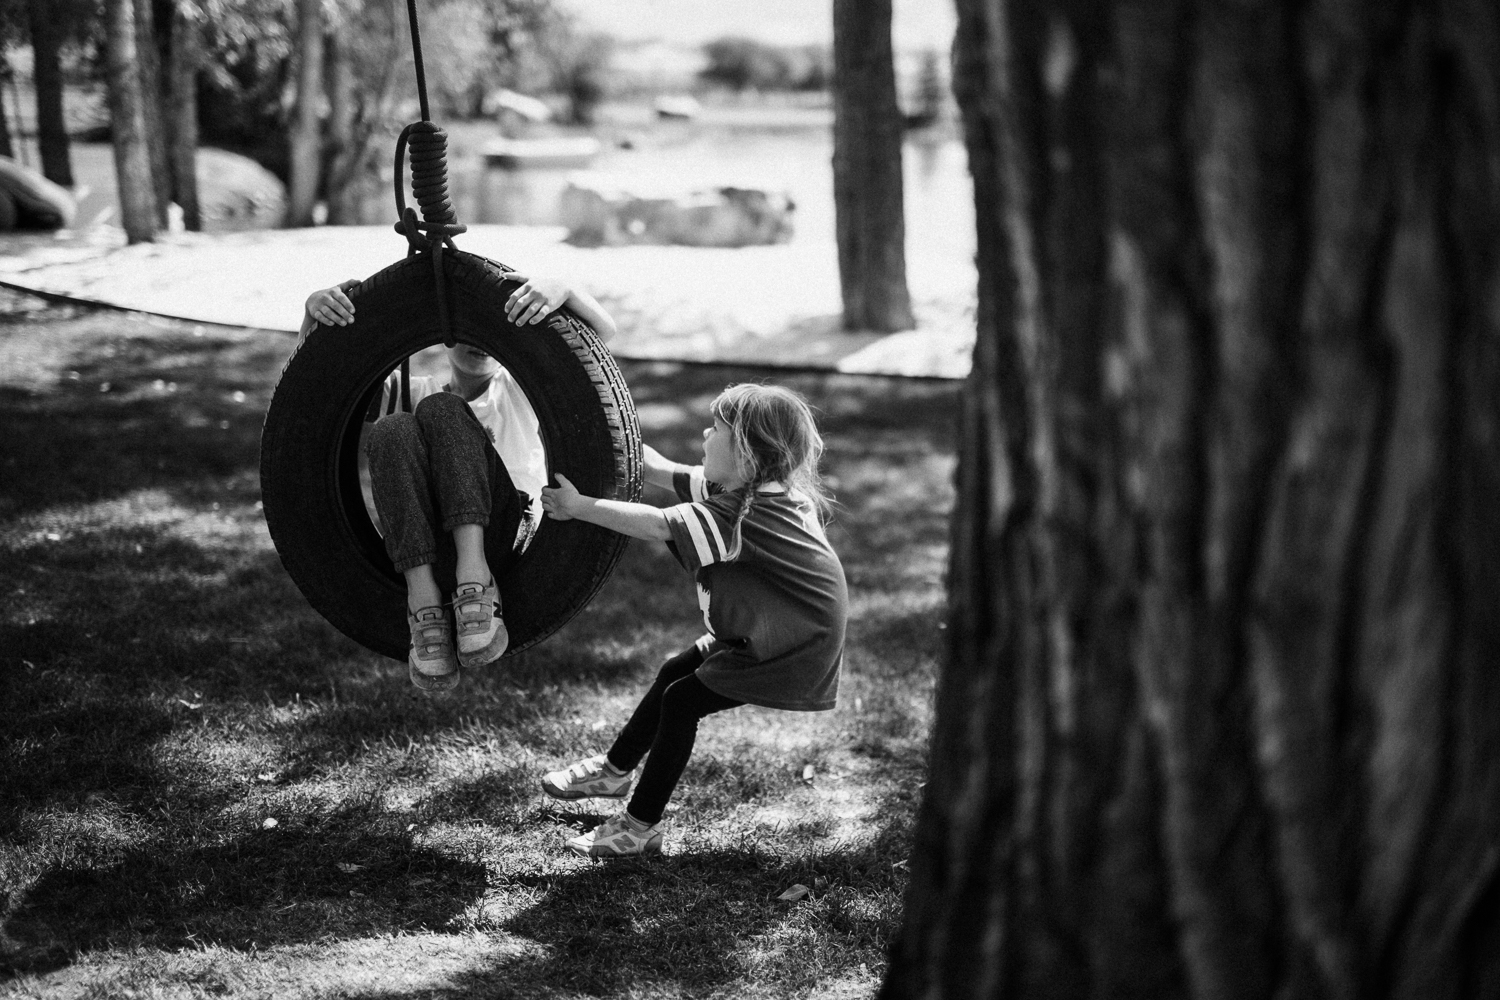 storytelling-photograph-of-kids-playing-on-tire-swing-in-heber-ut